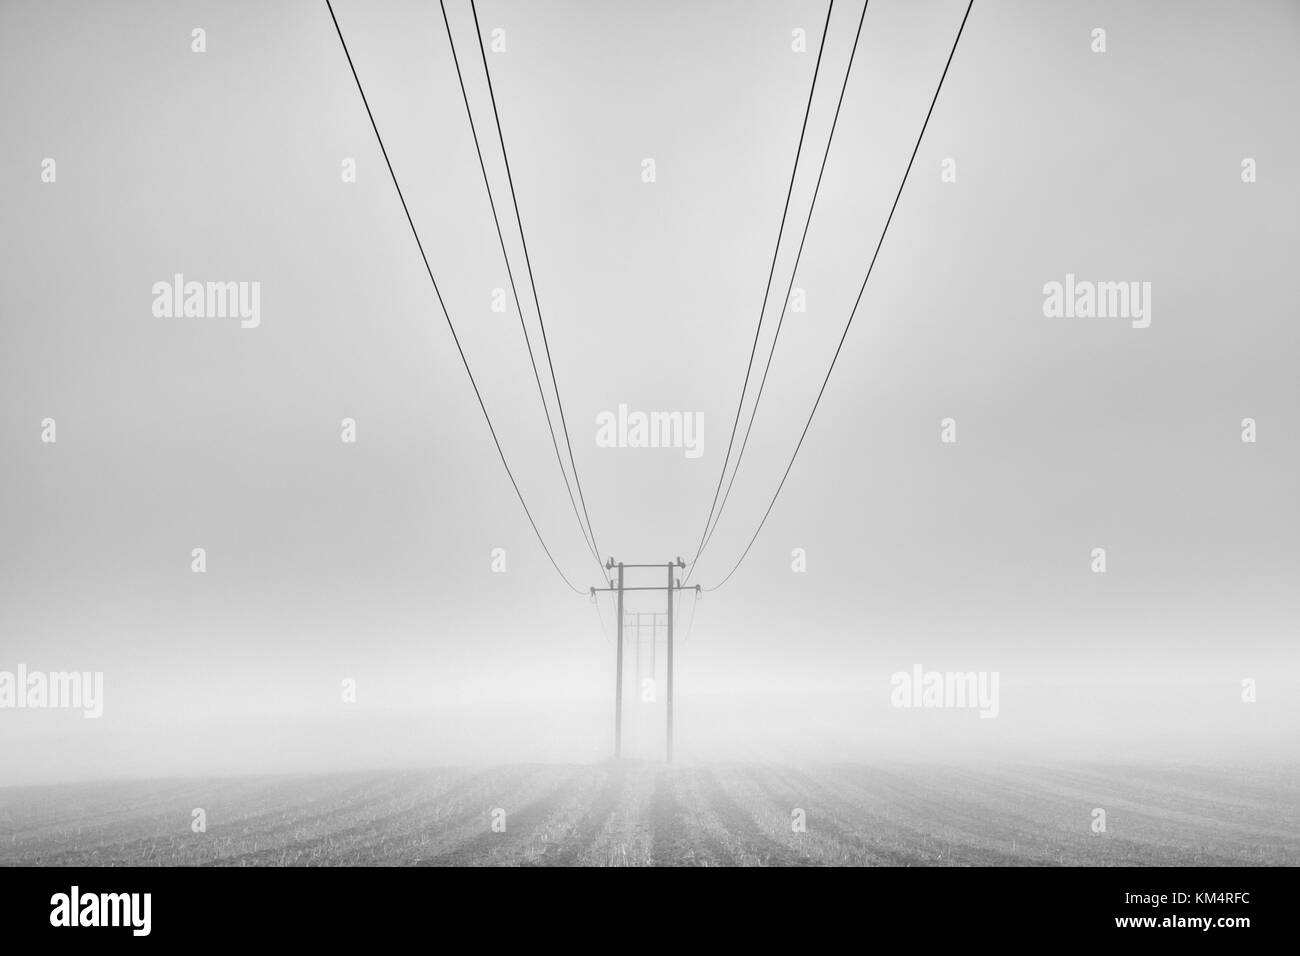 Symmetrical telephone wires on the fog - Stock Image